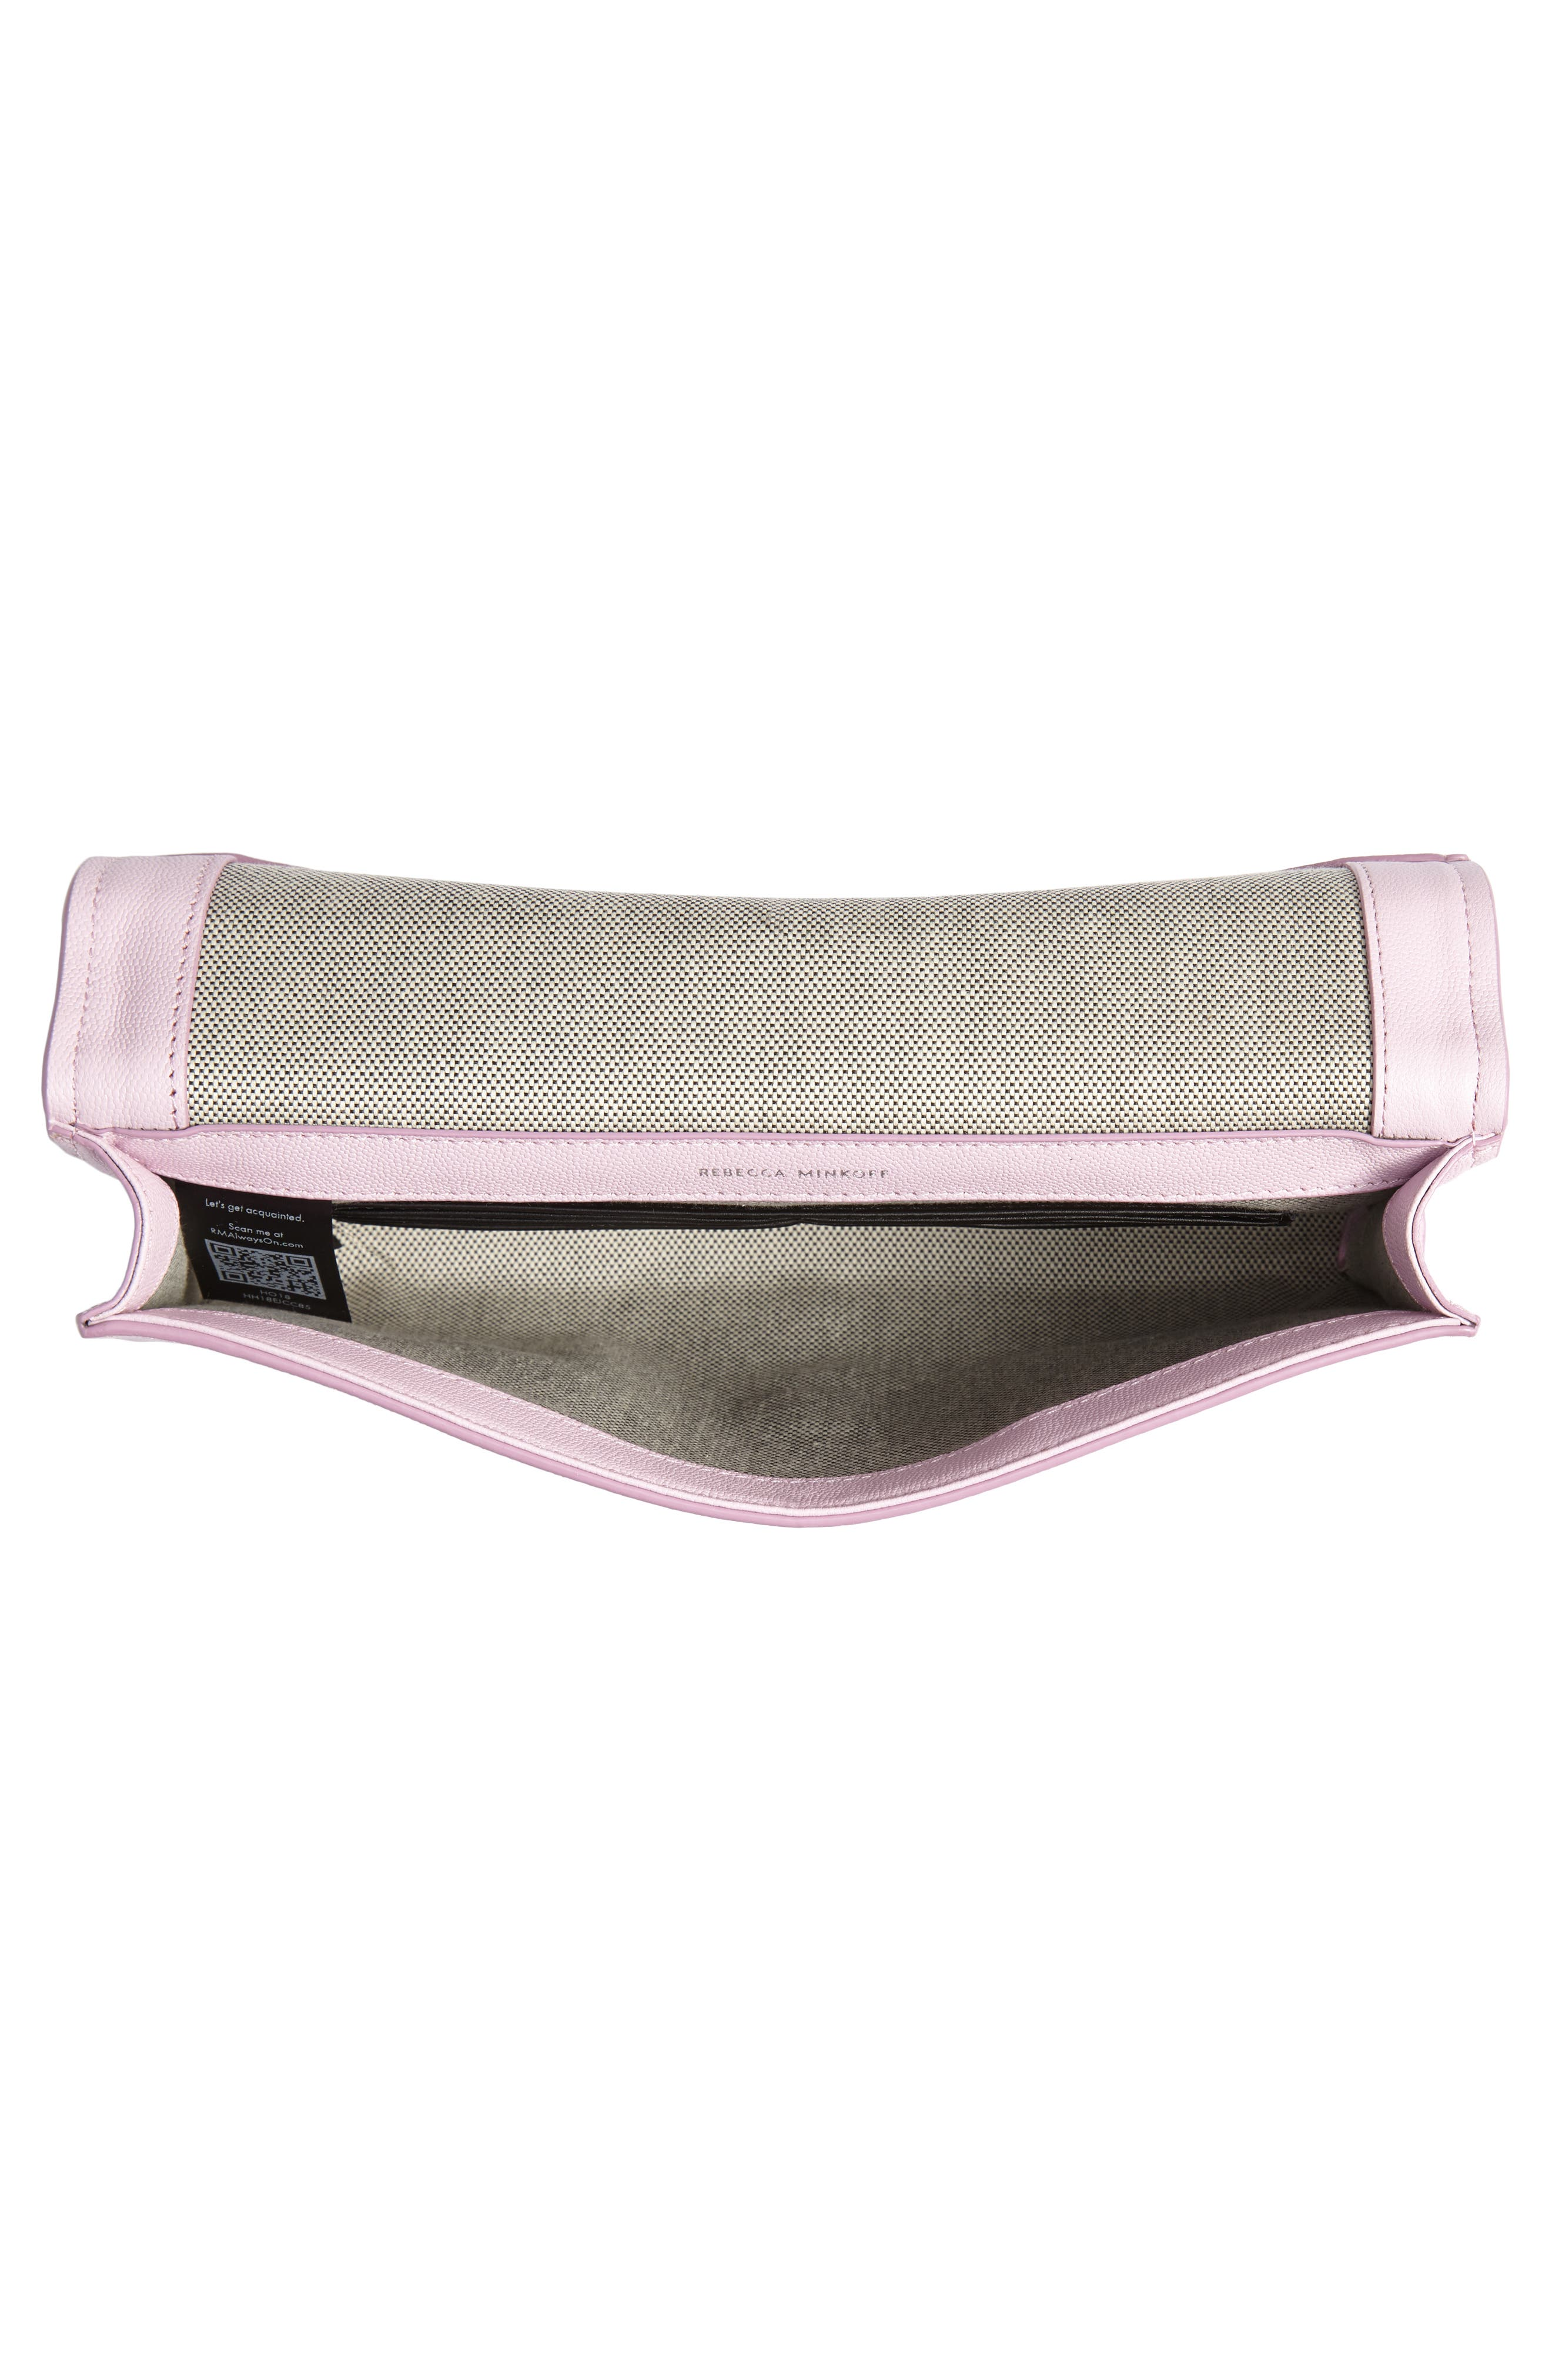 REBECCA MINKOFF, Jean Leather Clutch, Alternate thumbnail 5, color, LIGHT ORCHID